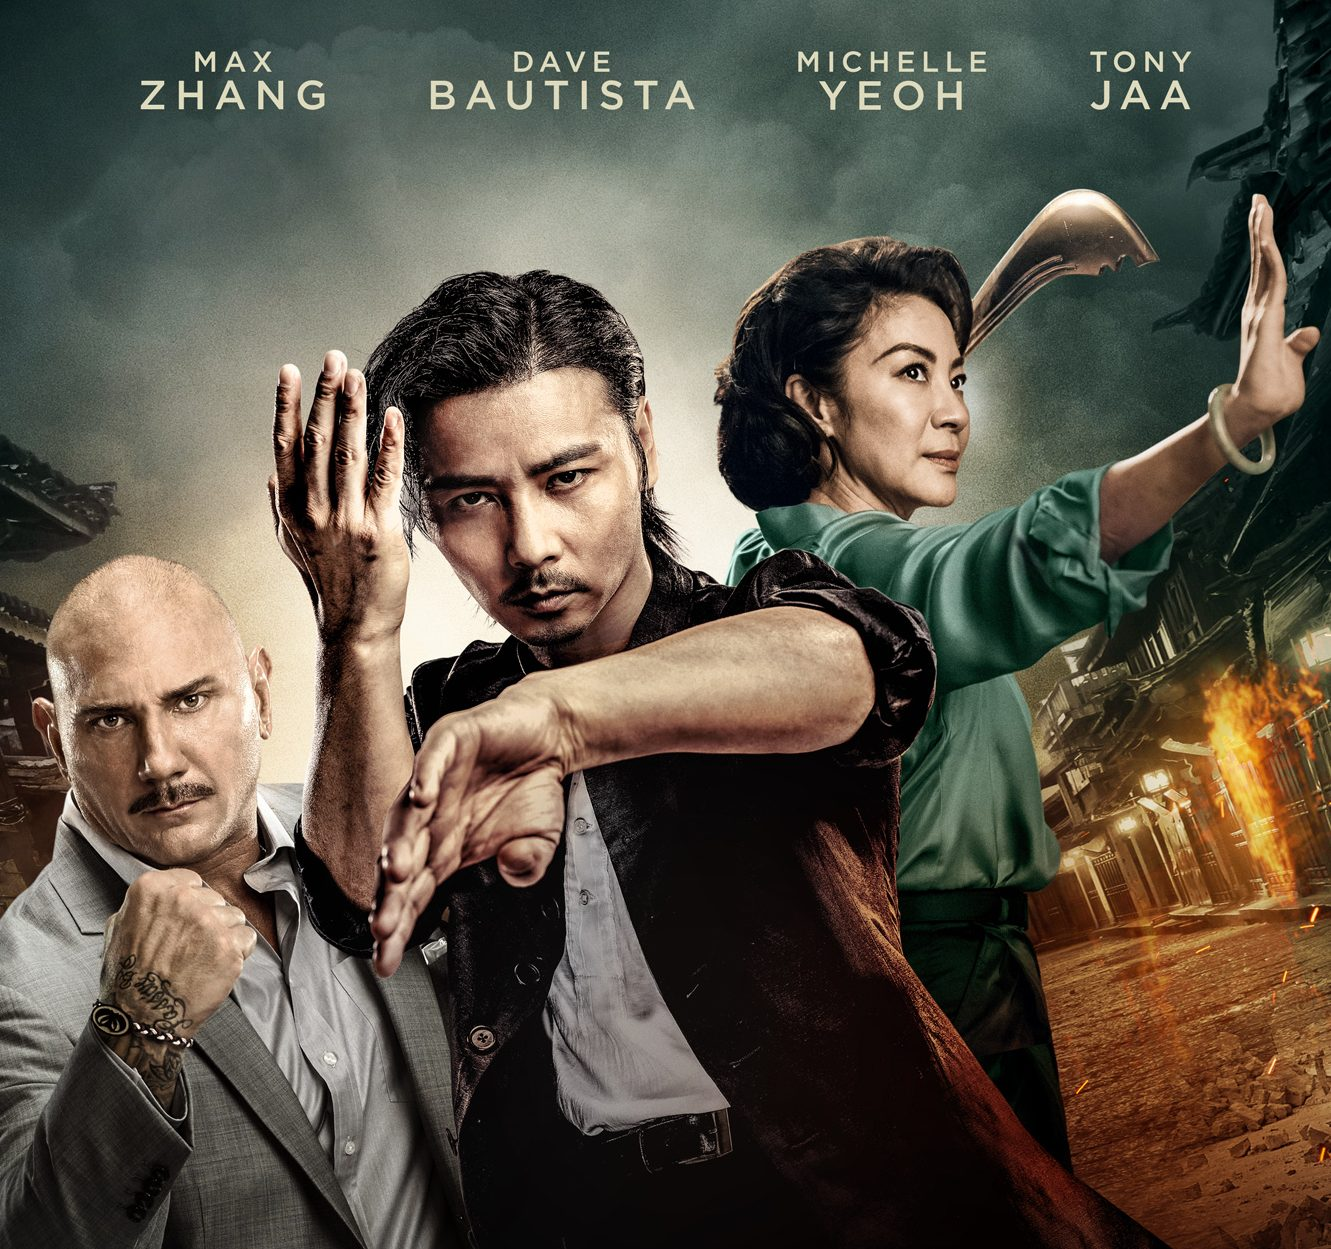 Dave Bautista, Michelle Yeoh, Tony Jaa team up to star in Master Z: IP Man Legacy